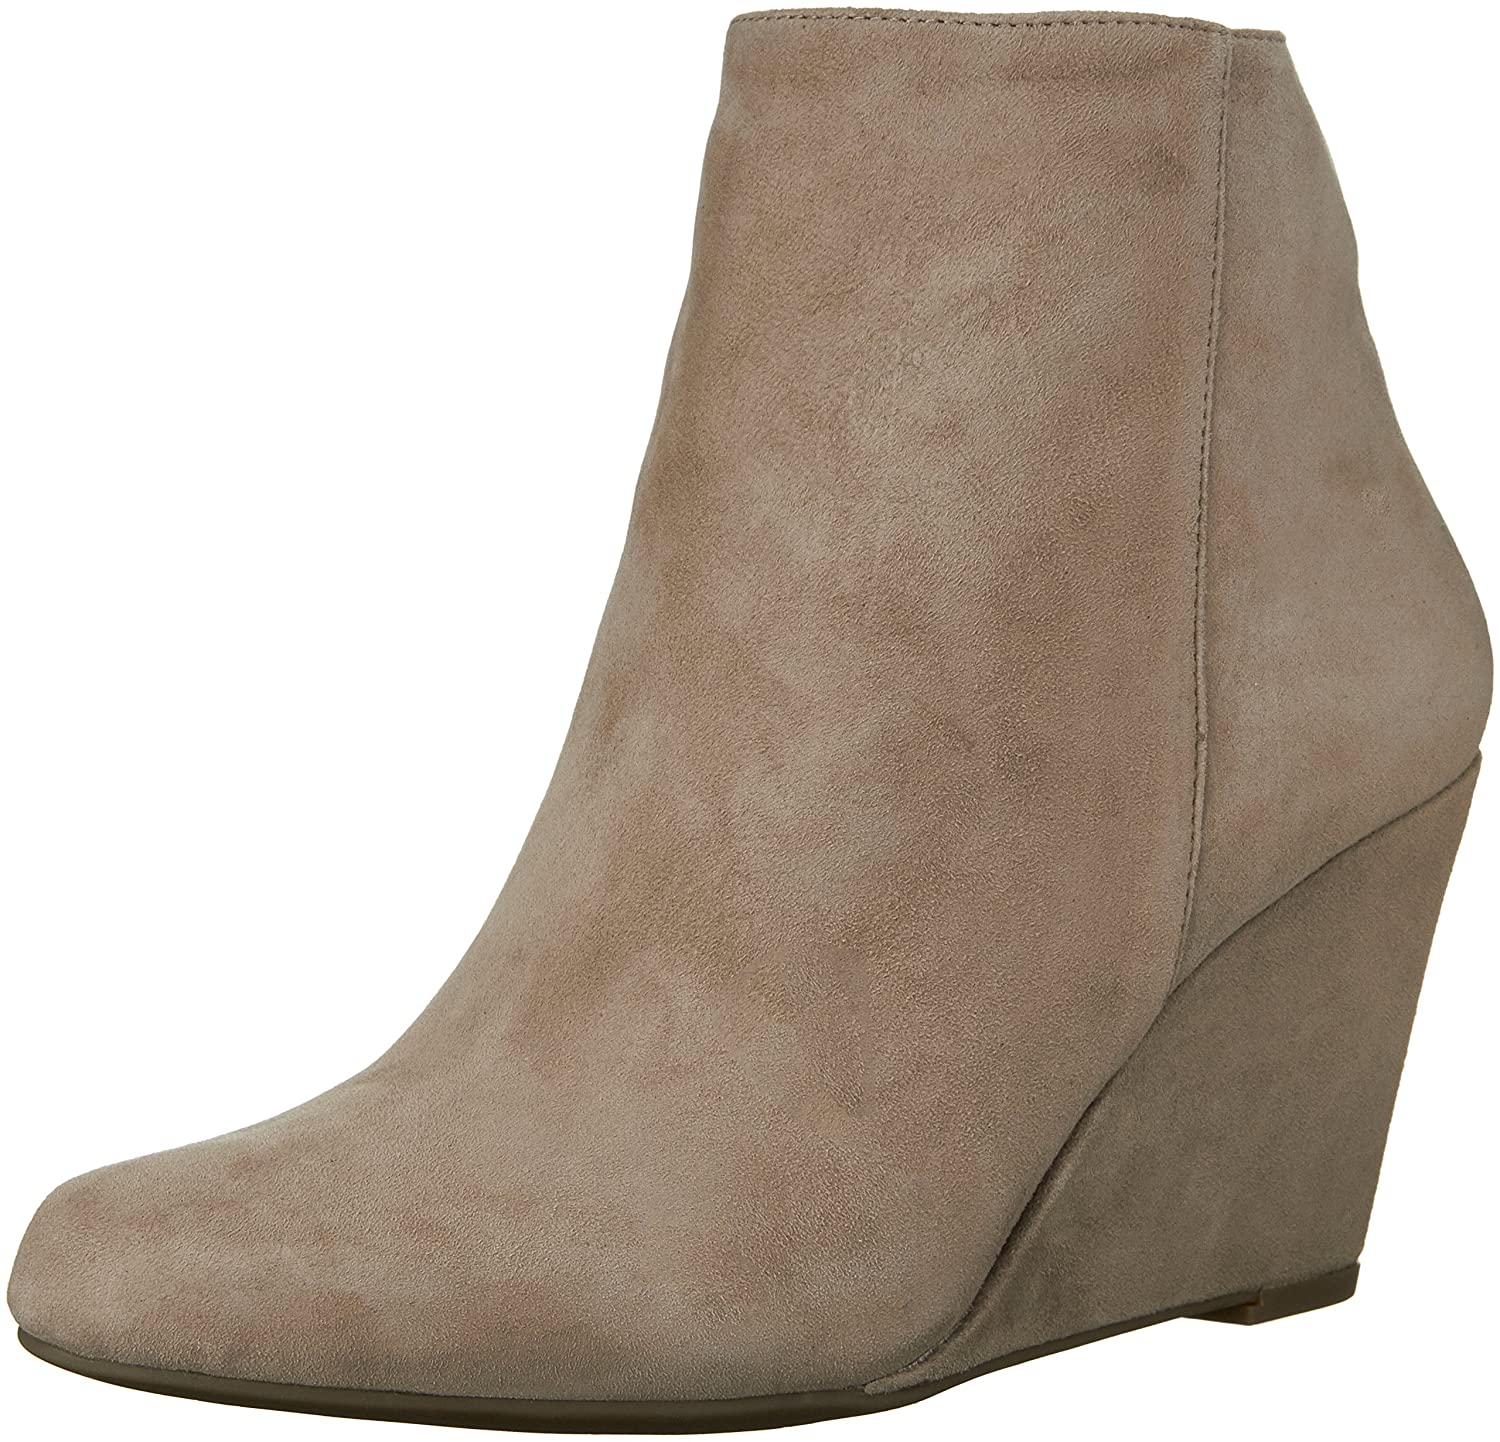 Jessica Simpson Women's Ronica Fashion Boot JS-RONICA